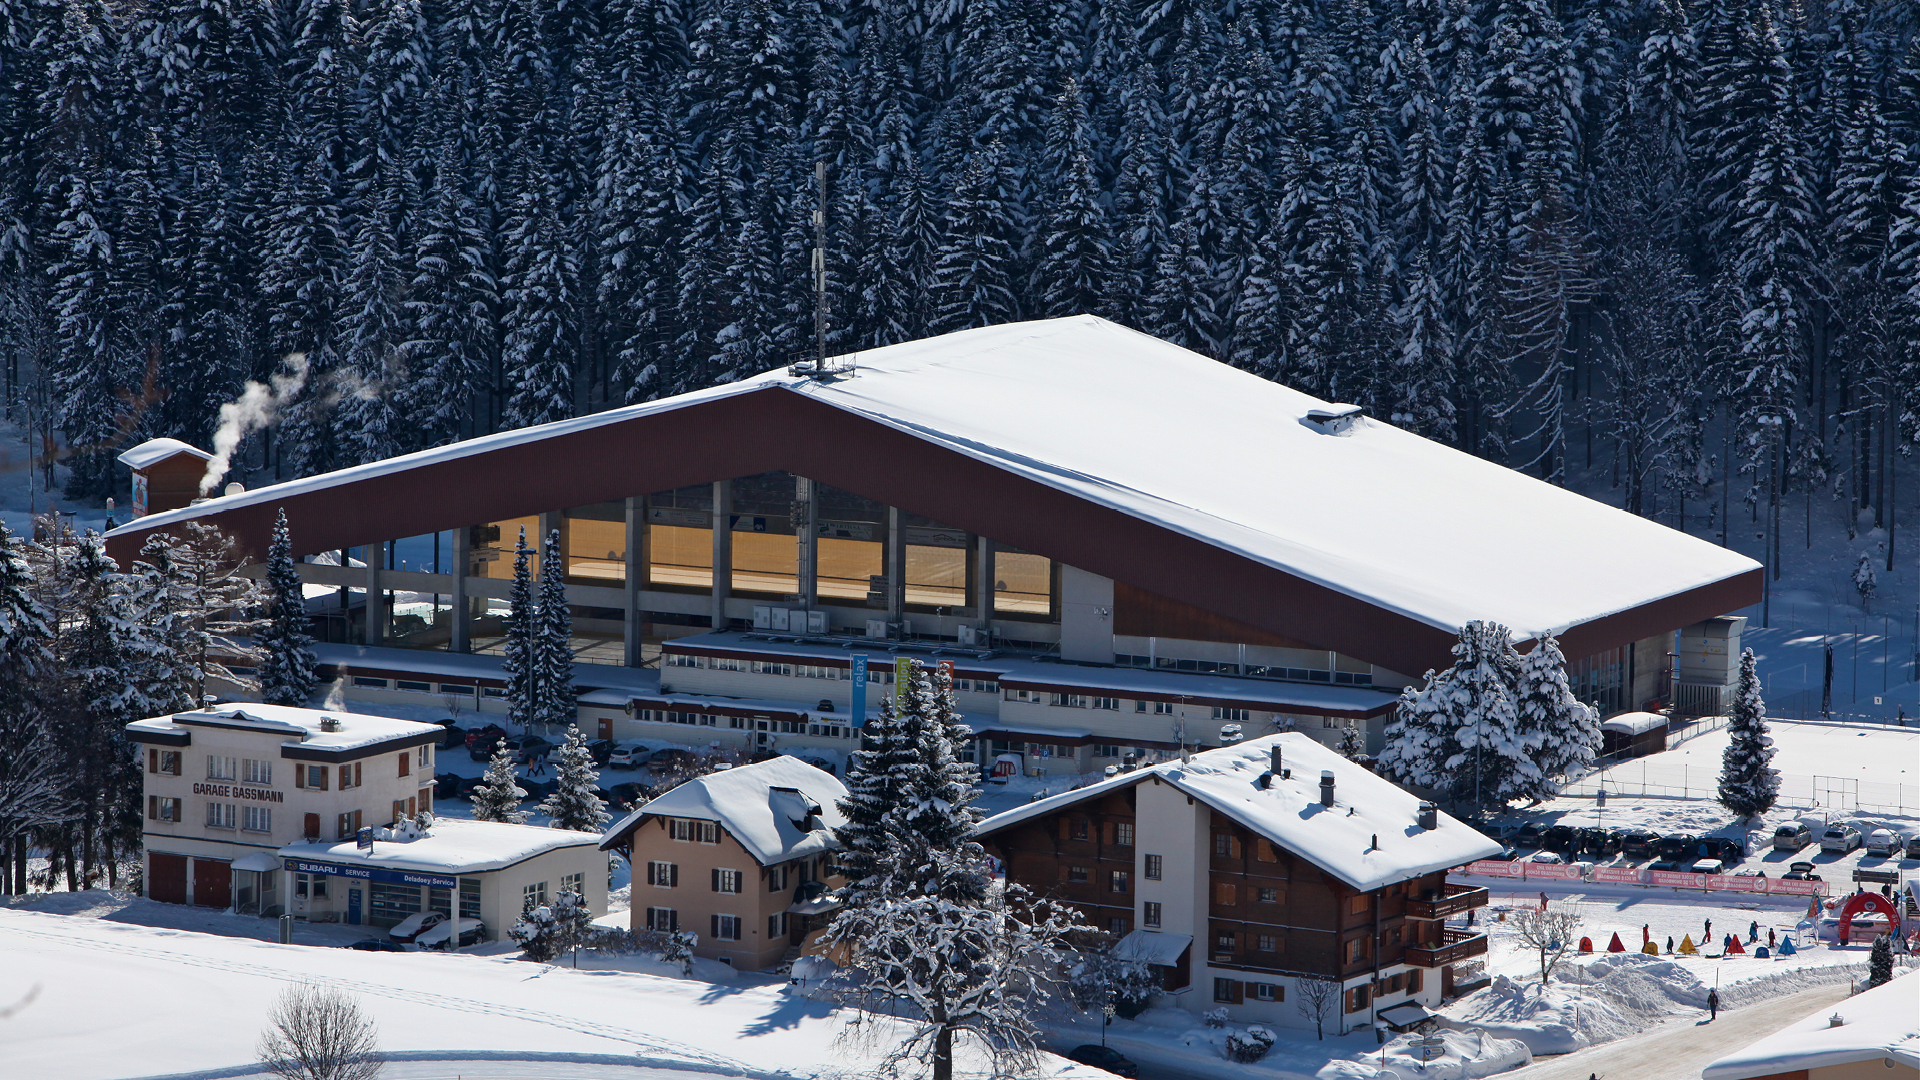 Sport Center der Eisbahn - Winter - Leysin